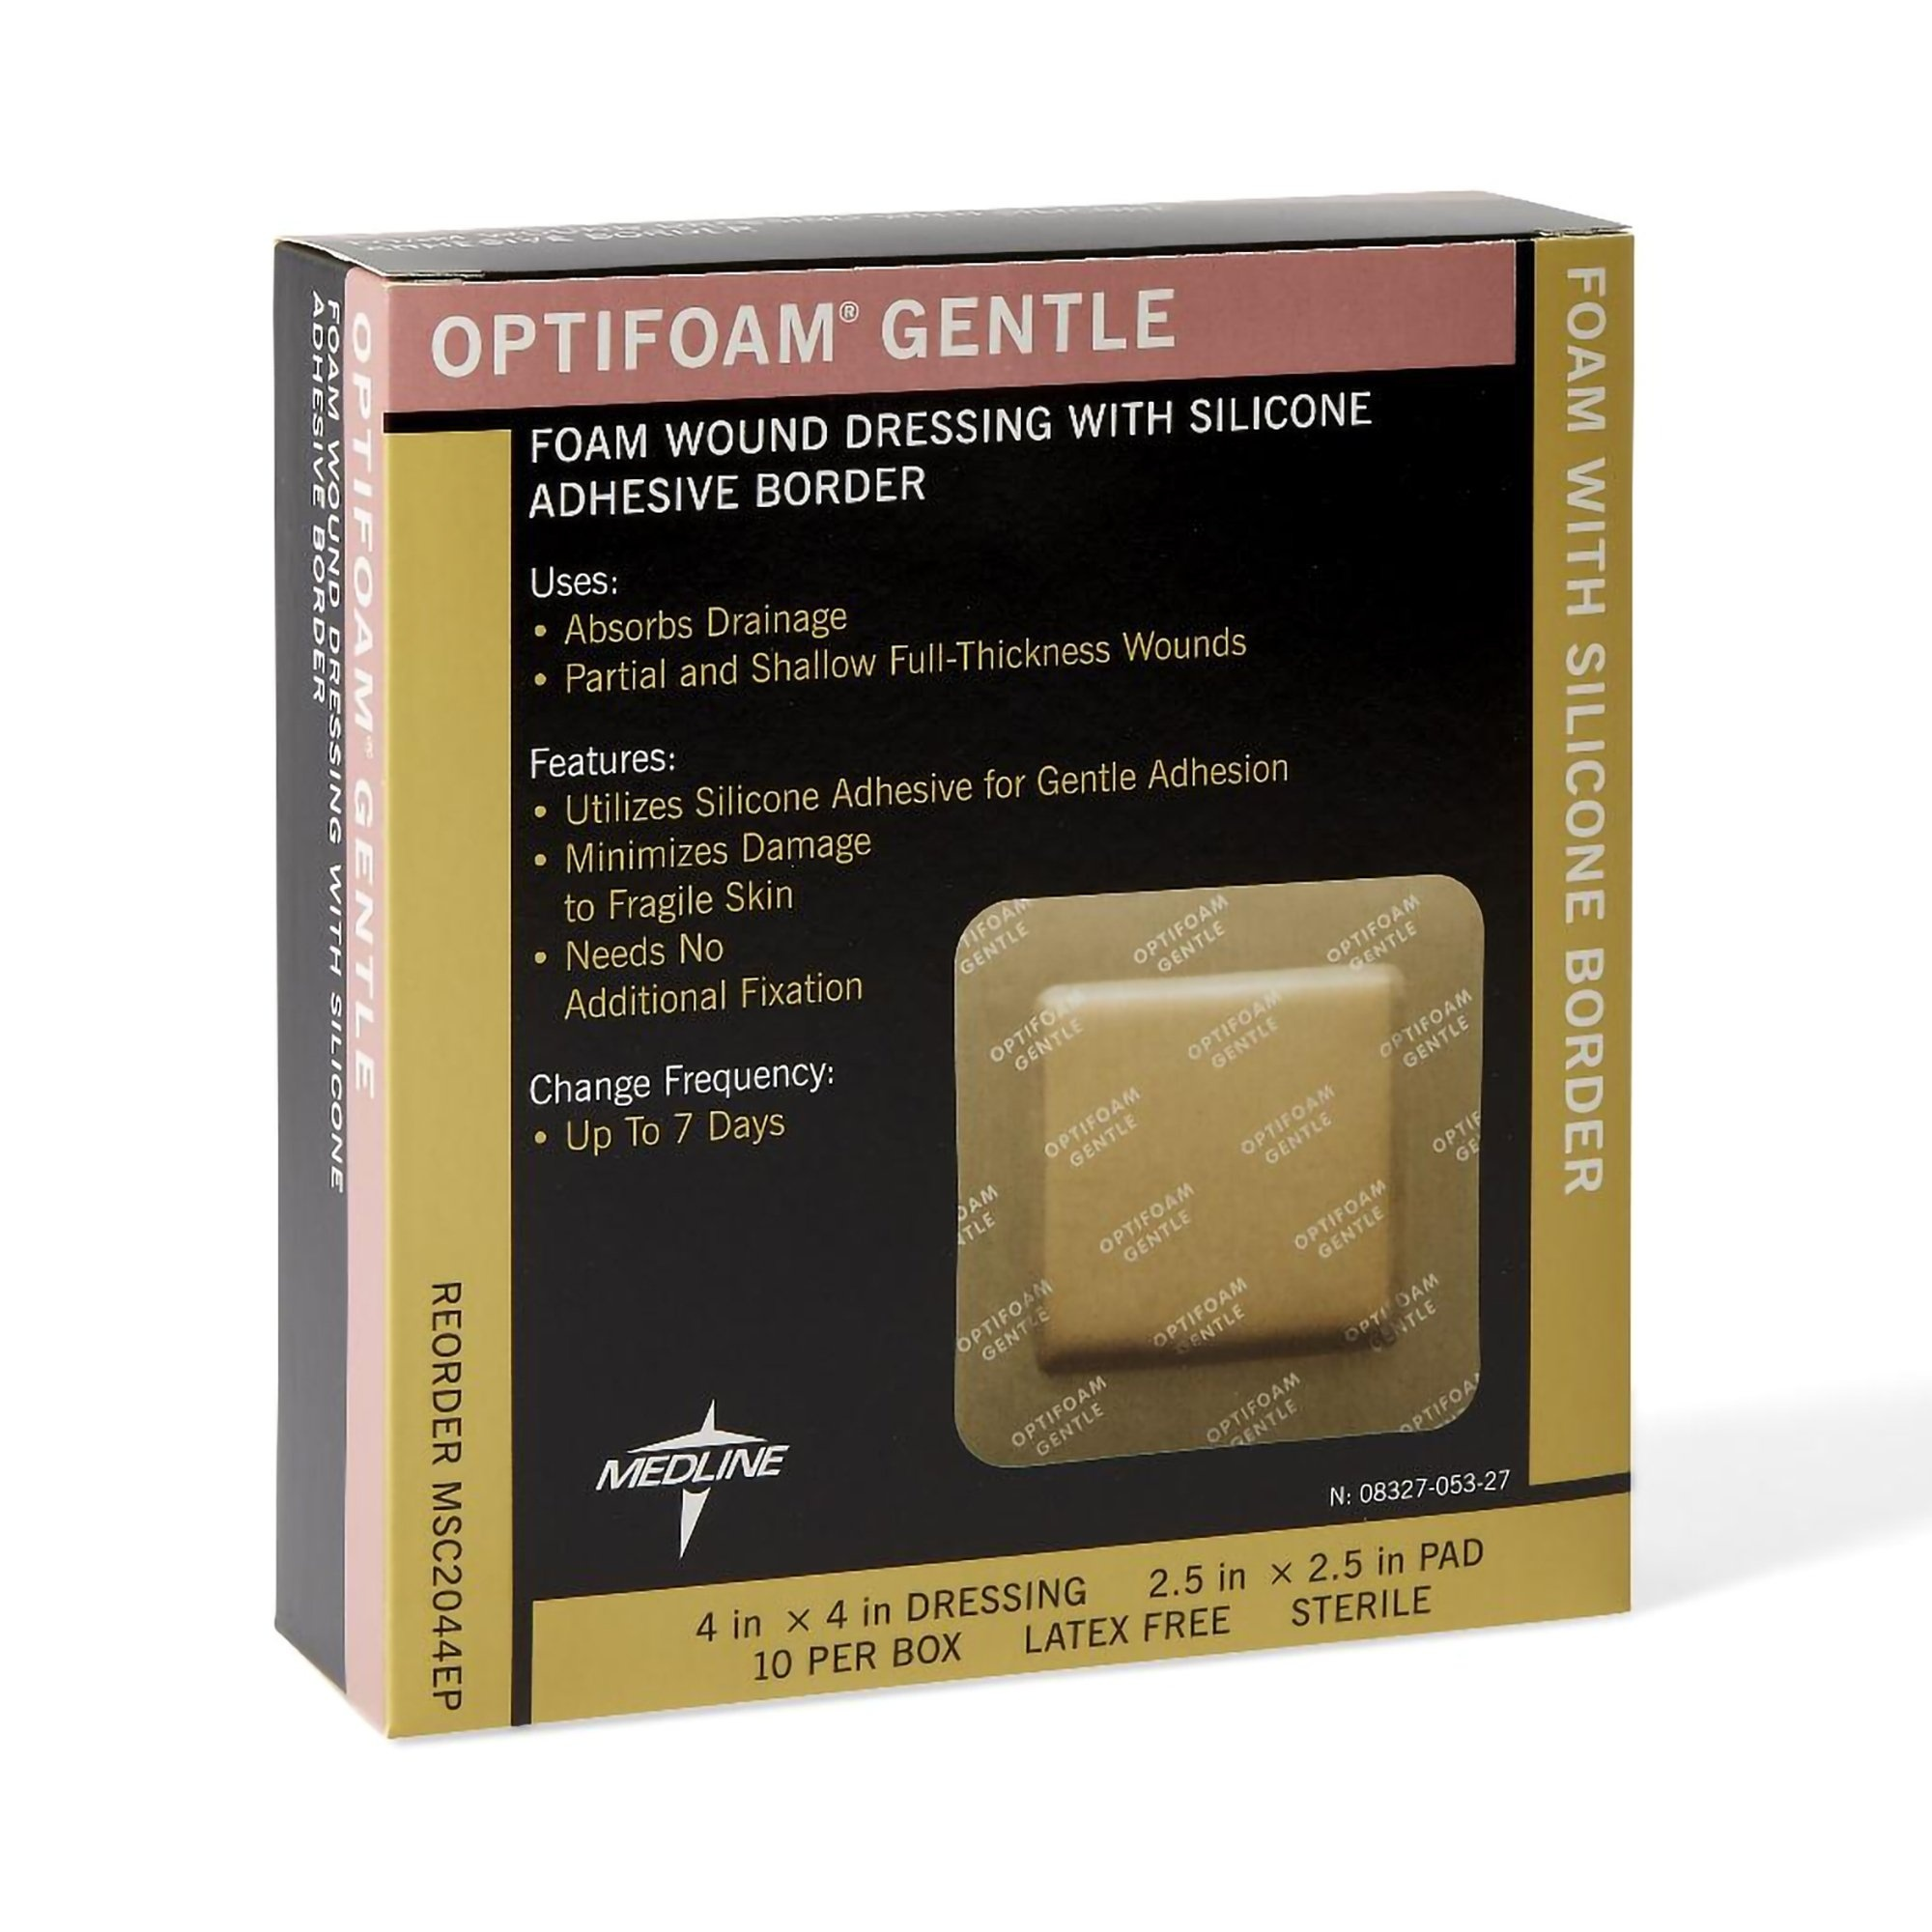 """Optifoam Gentle Foam Wound Dressing with Silicone Adhesive Border, 4 X 4"""", MSC2044EP, Box of 10"""